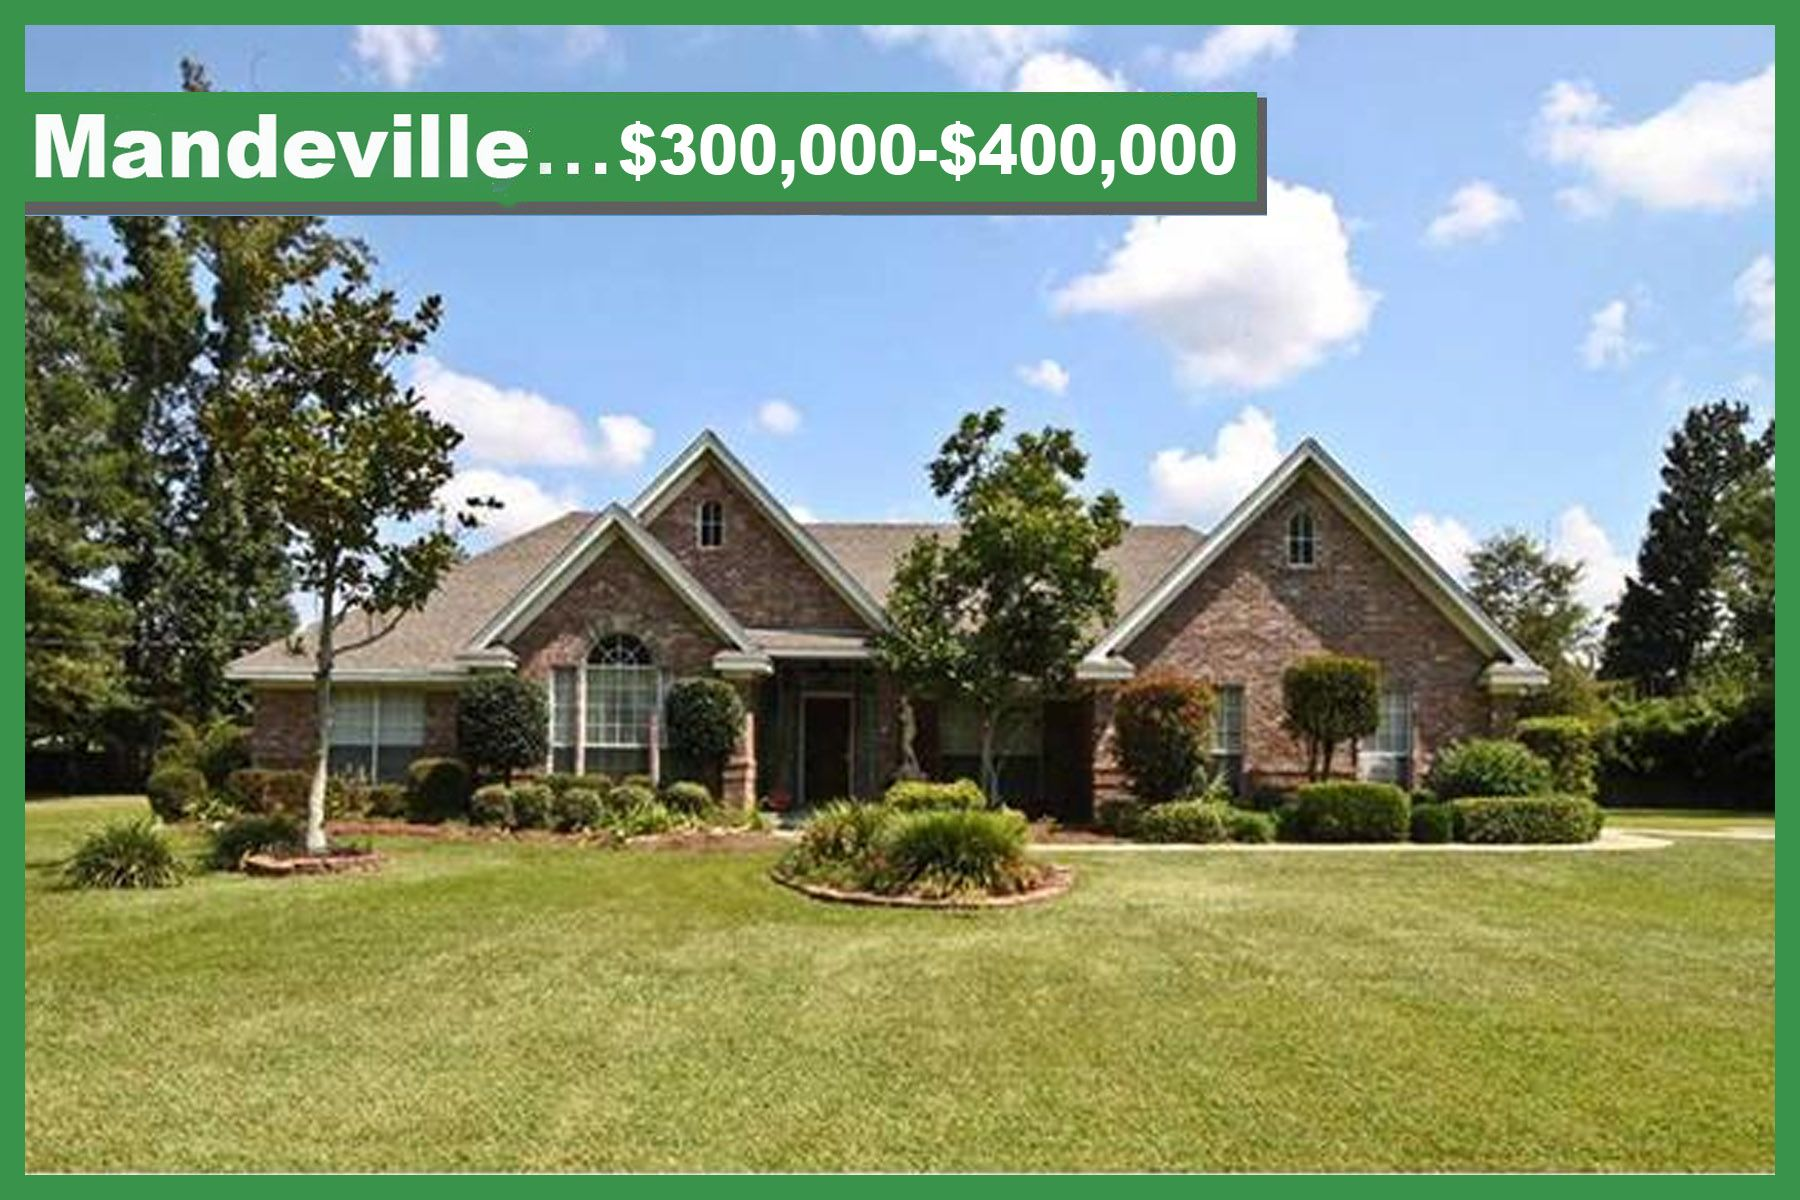 Mandeville Real Estate 300 000 400 000 Full List Of All Homes Real Estate Land In The Subdivision Locate Real Estate La Real Estate Real Estate Listings